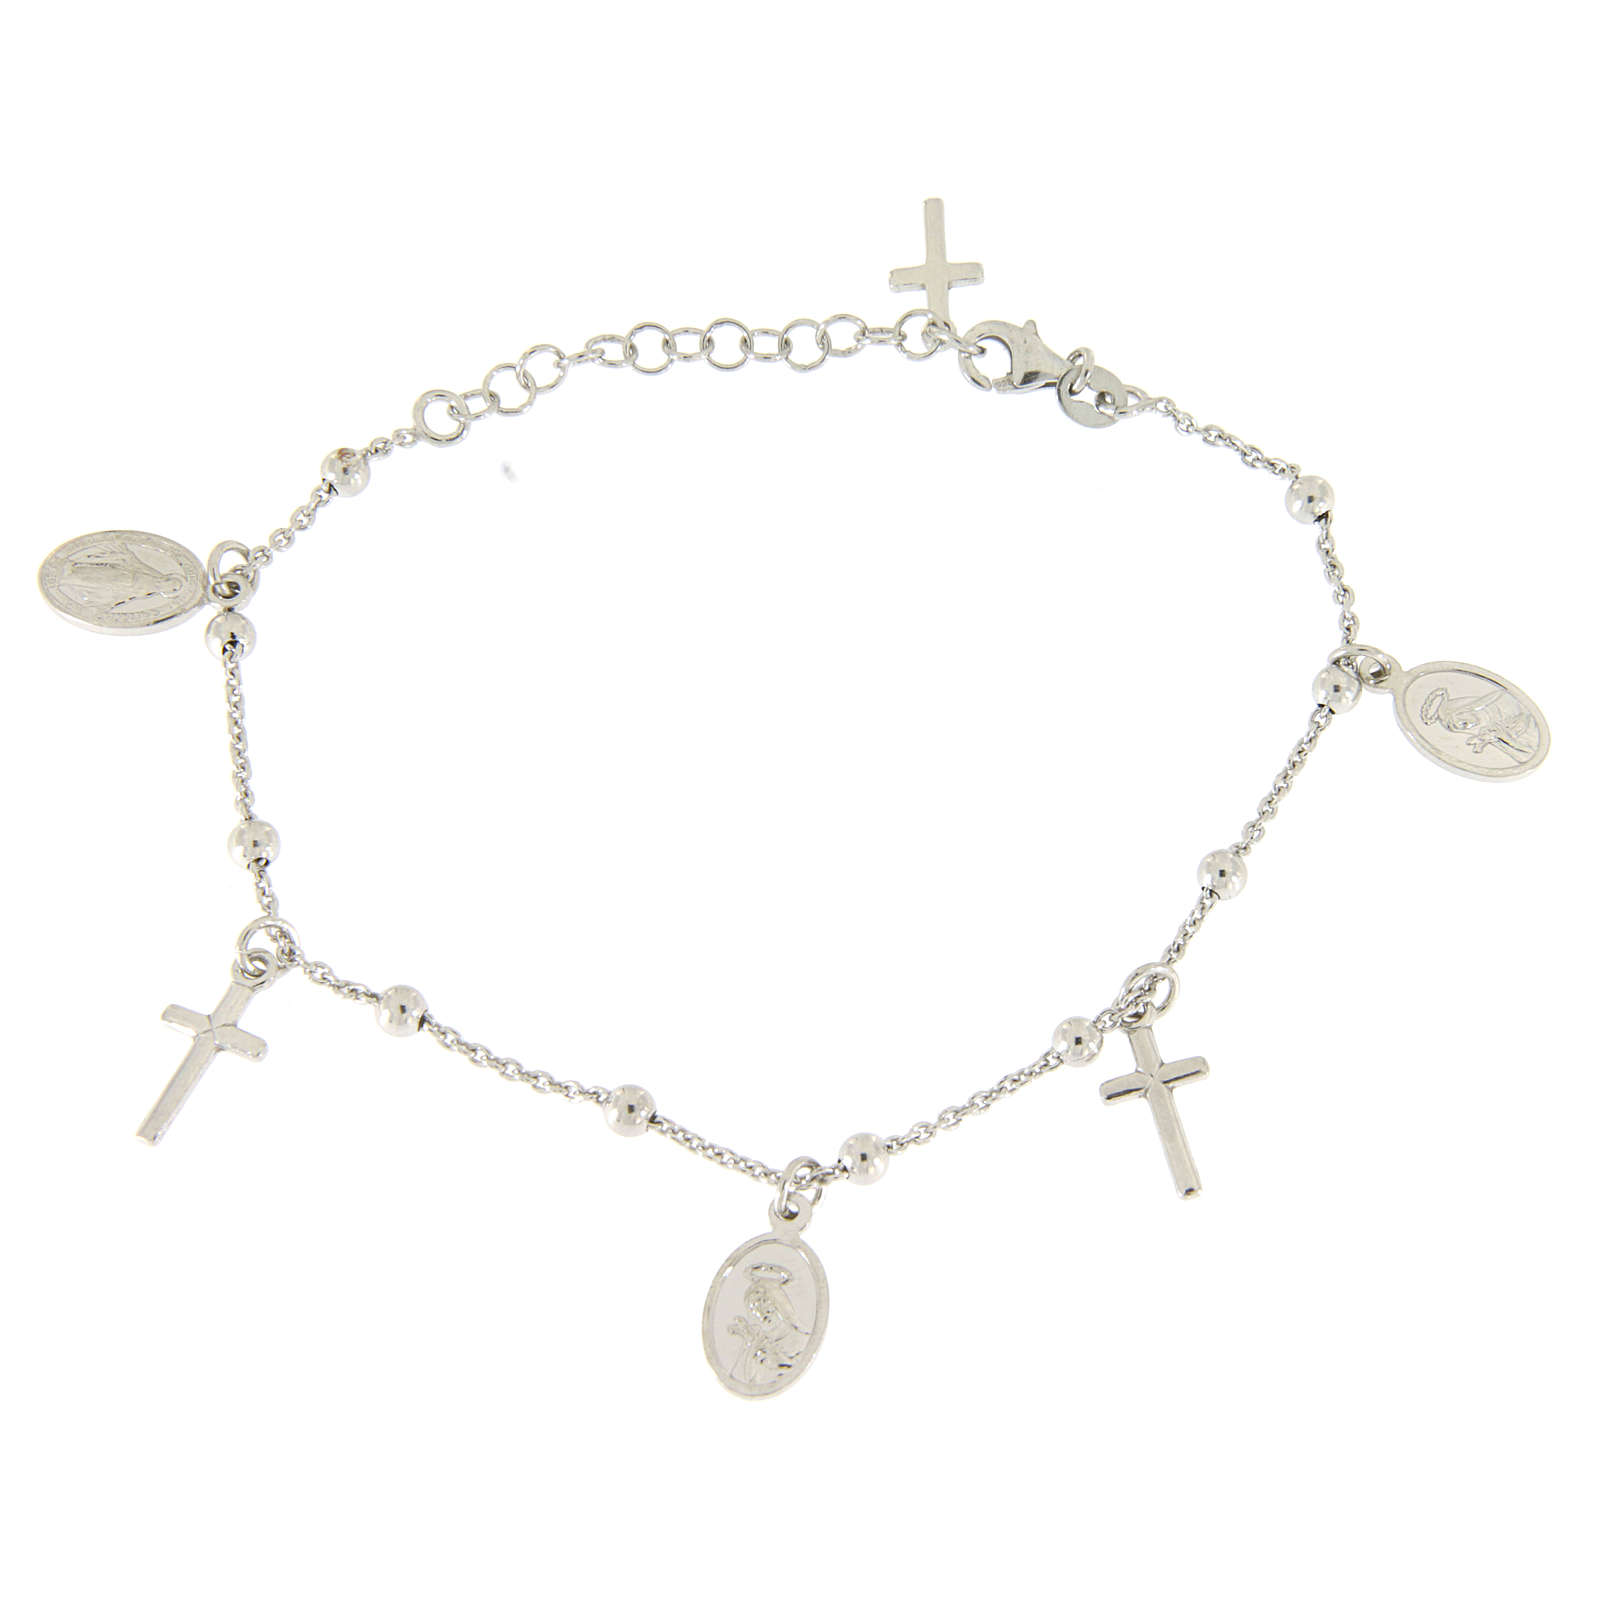 Bracelet with pendant medalets and 925 sterling silver crosses 4